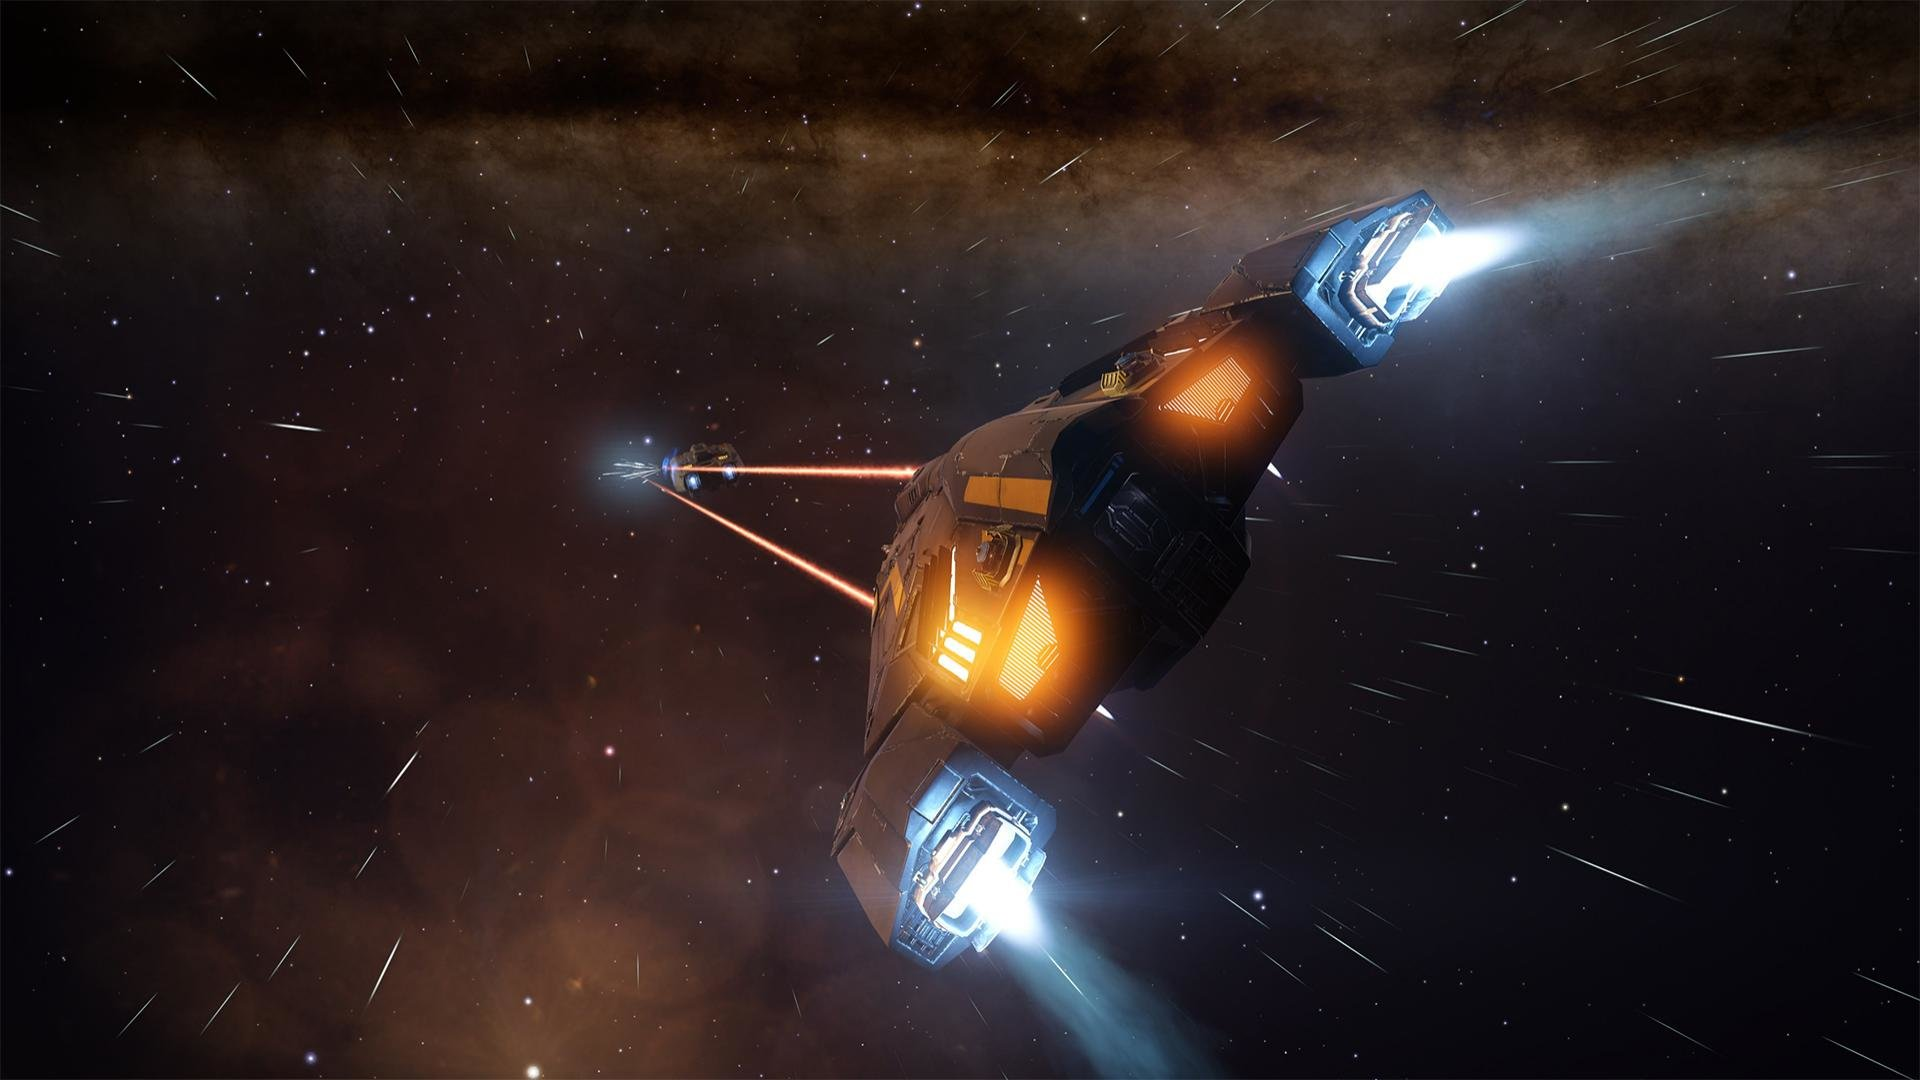 Elite Dangerous Wallpapers 1920x1080 Full Hd 1080p Desktop Backgrounds